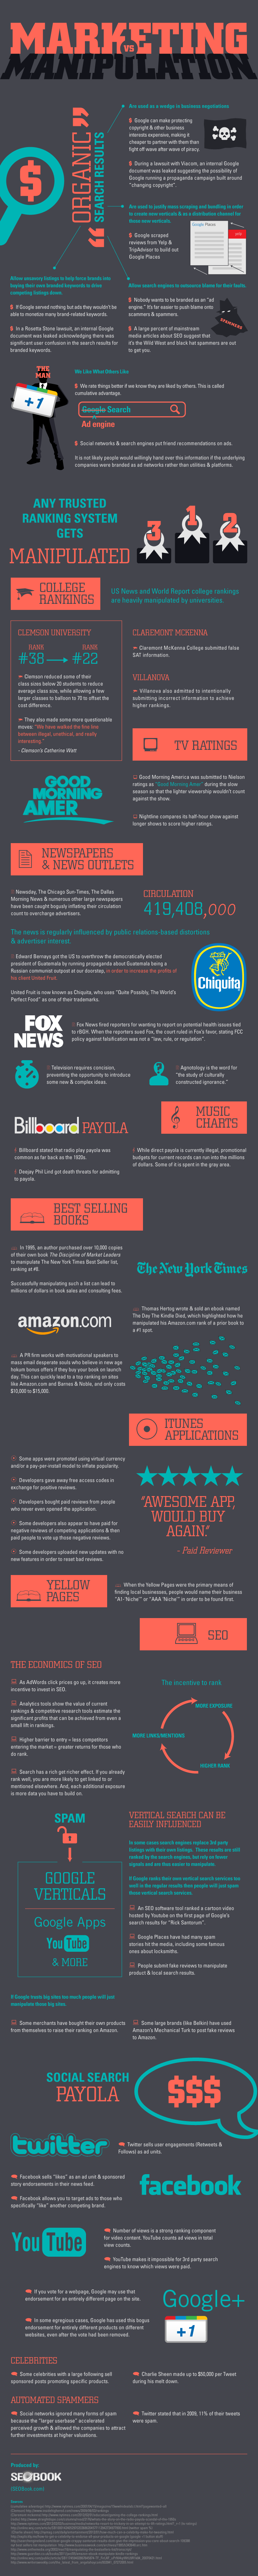 Marketing vs Manipulation Infographic.